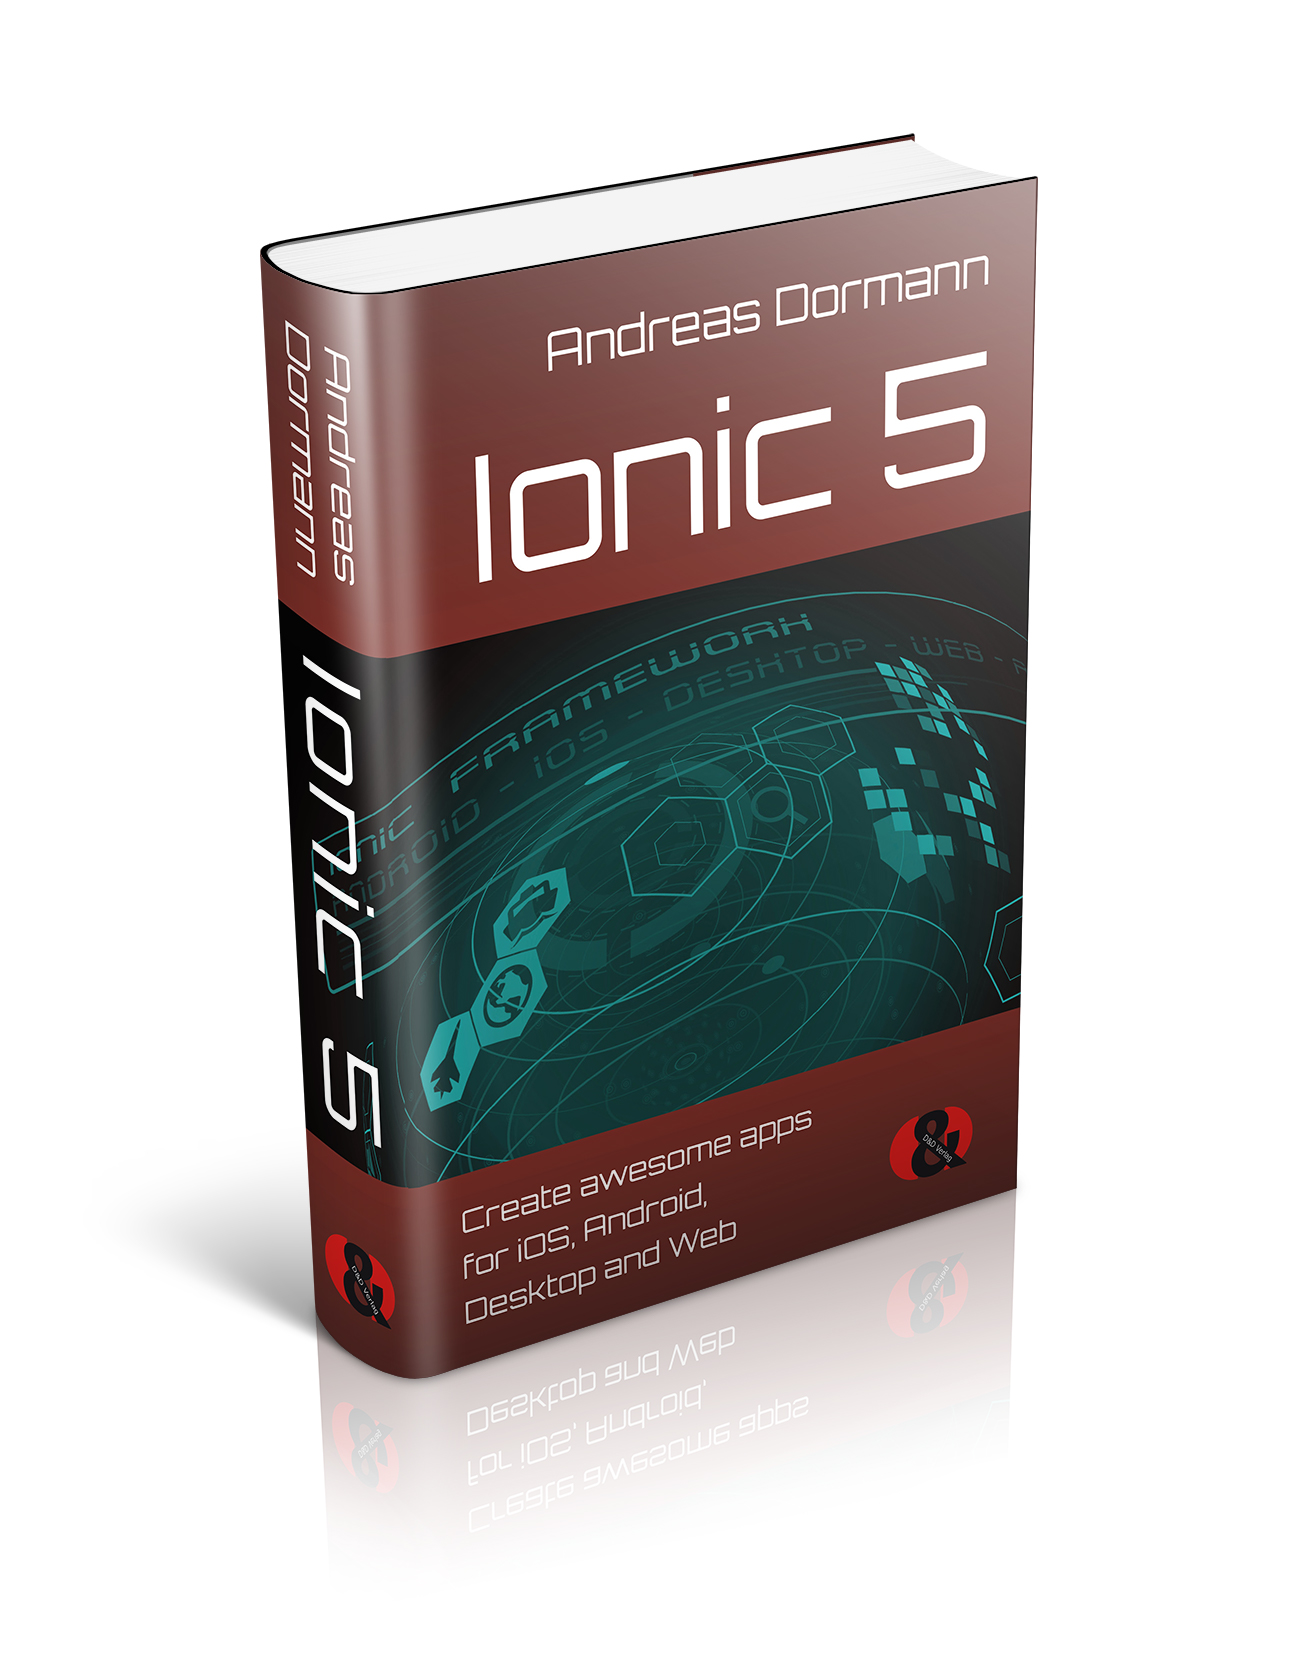 My Ionic 5 book is here!